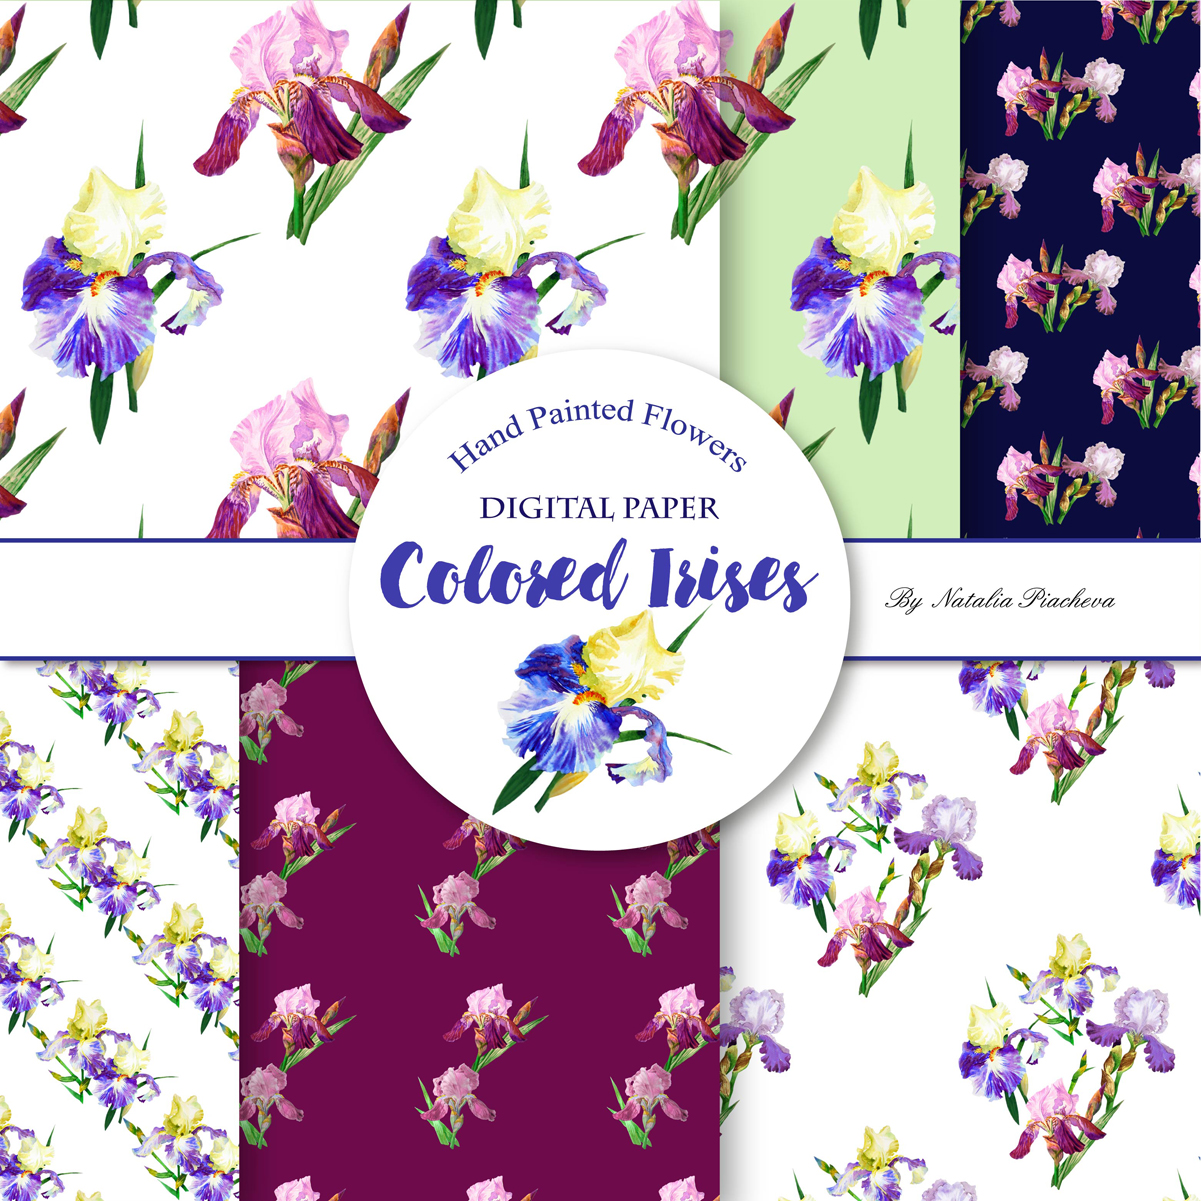 Digital Paper with Colored Irises example image 3